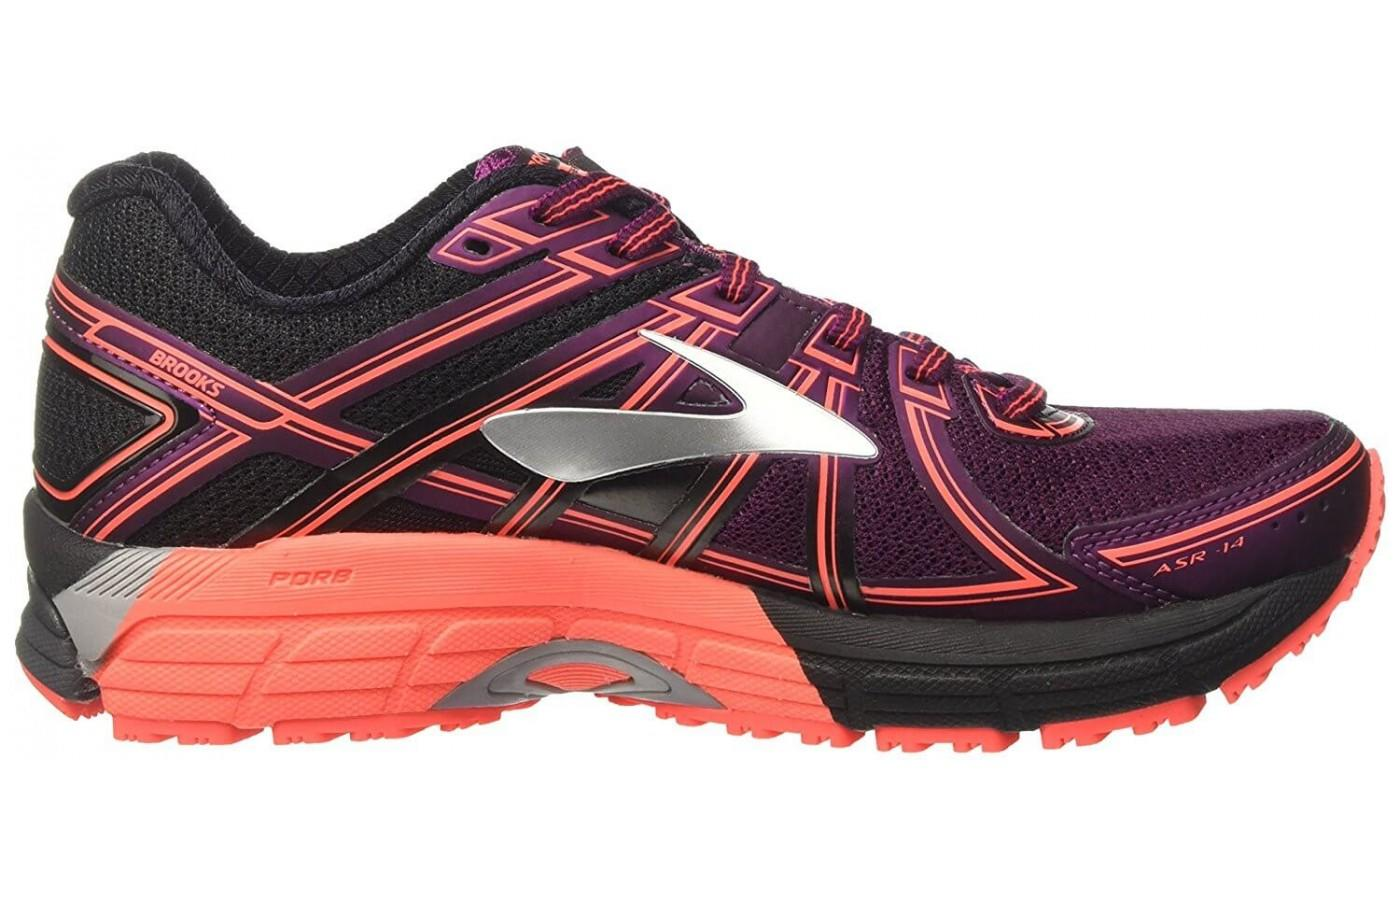 here's a look at the profile of the Brooks Adrenaline ASR 14